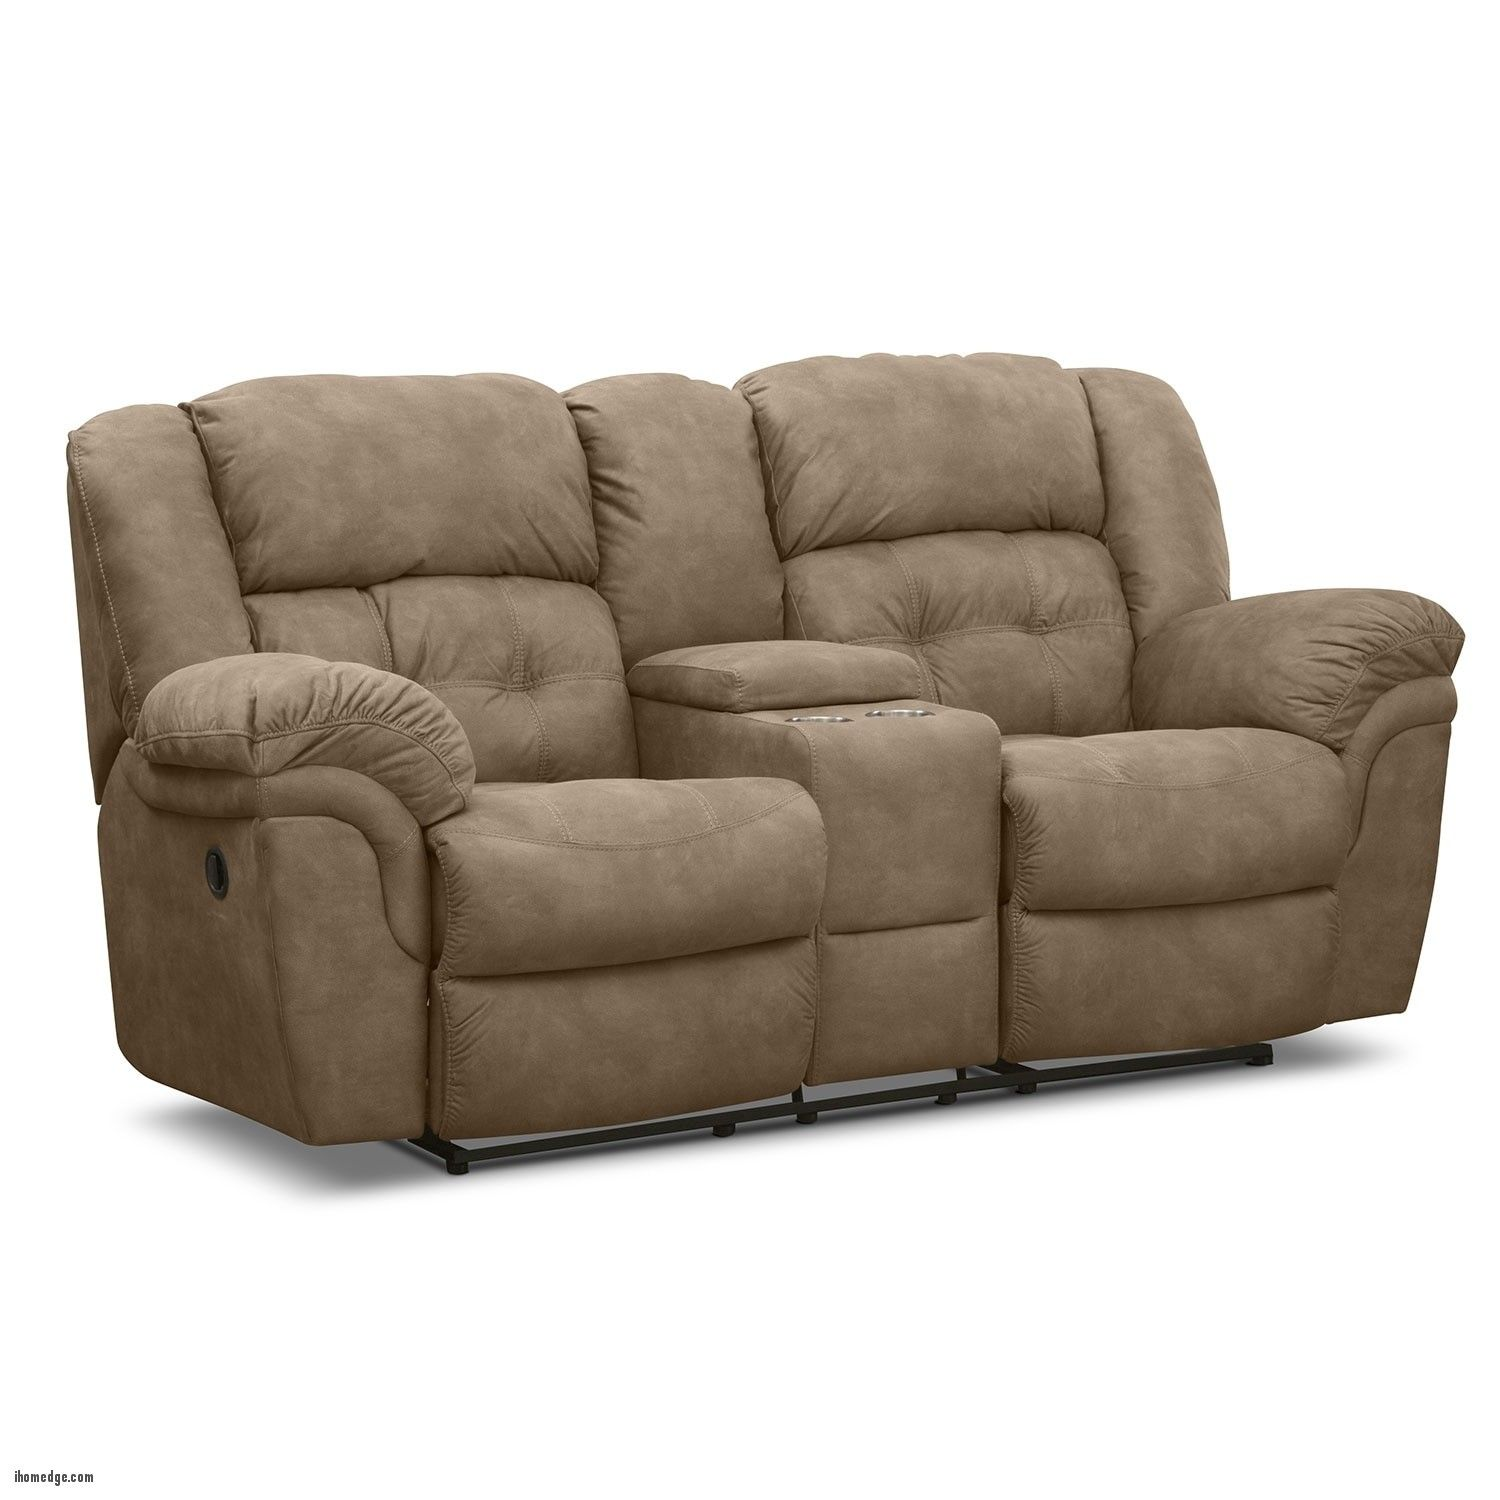 Inspirational New Rocker Recliner Loveseat  Full Image for Loveseat Recliners With Console Inspiring Style For  sc 1 st  Pinterest : new recliners - islam-shia.org